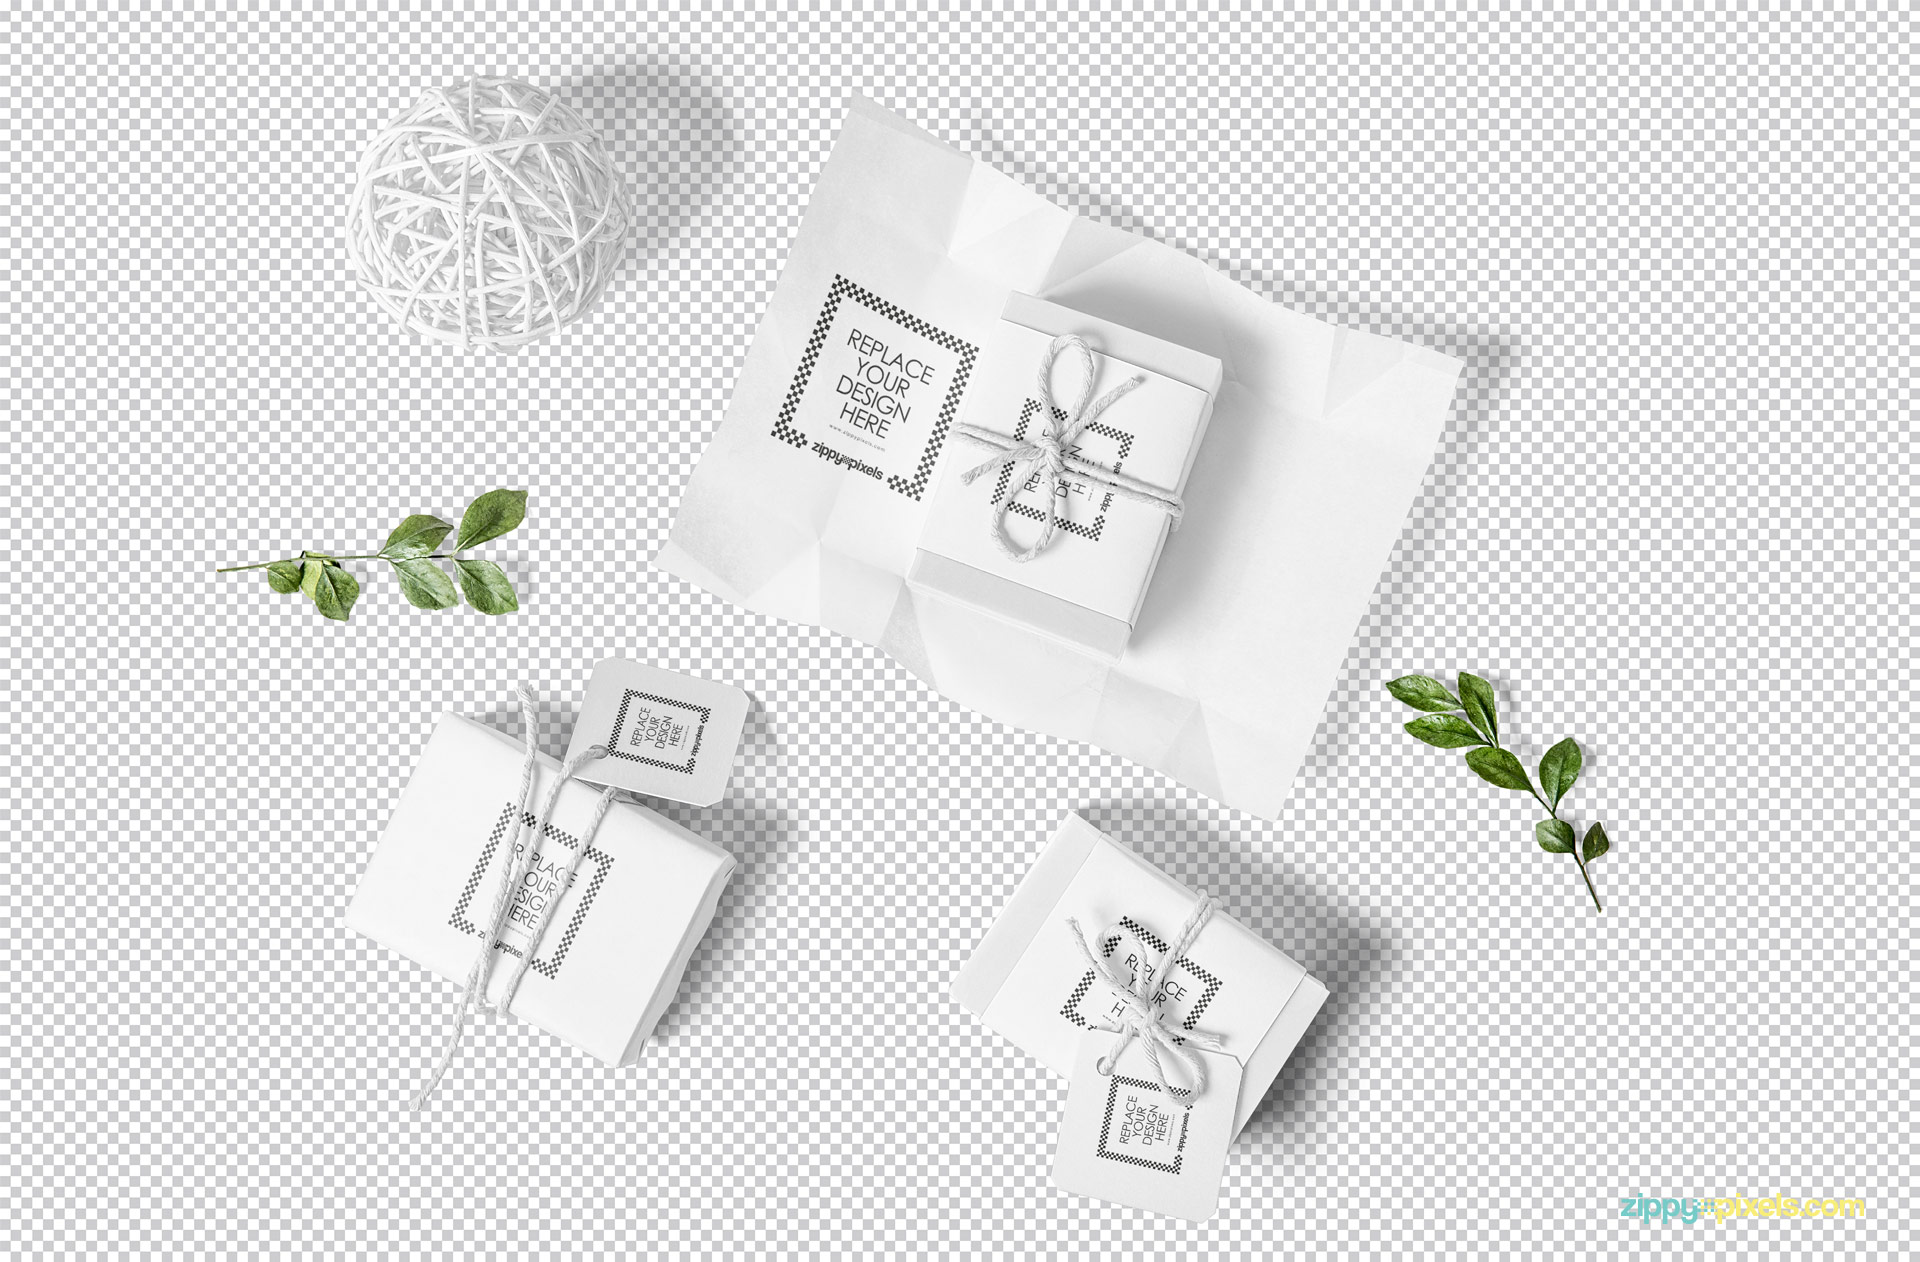 Use Photoshop to customize the craft soap packaging mockup.